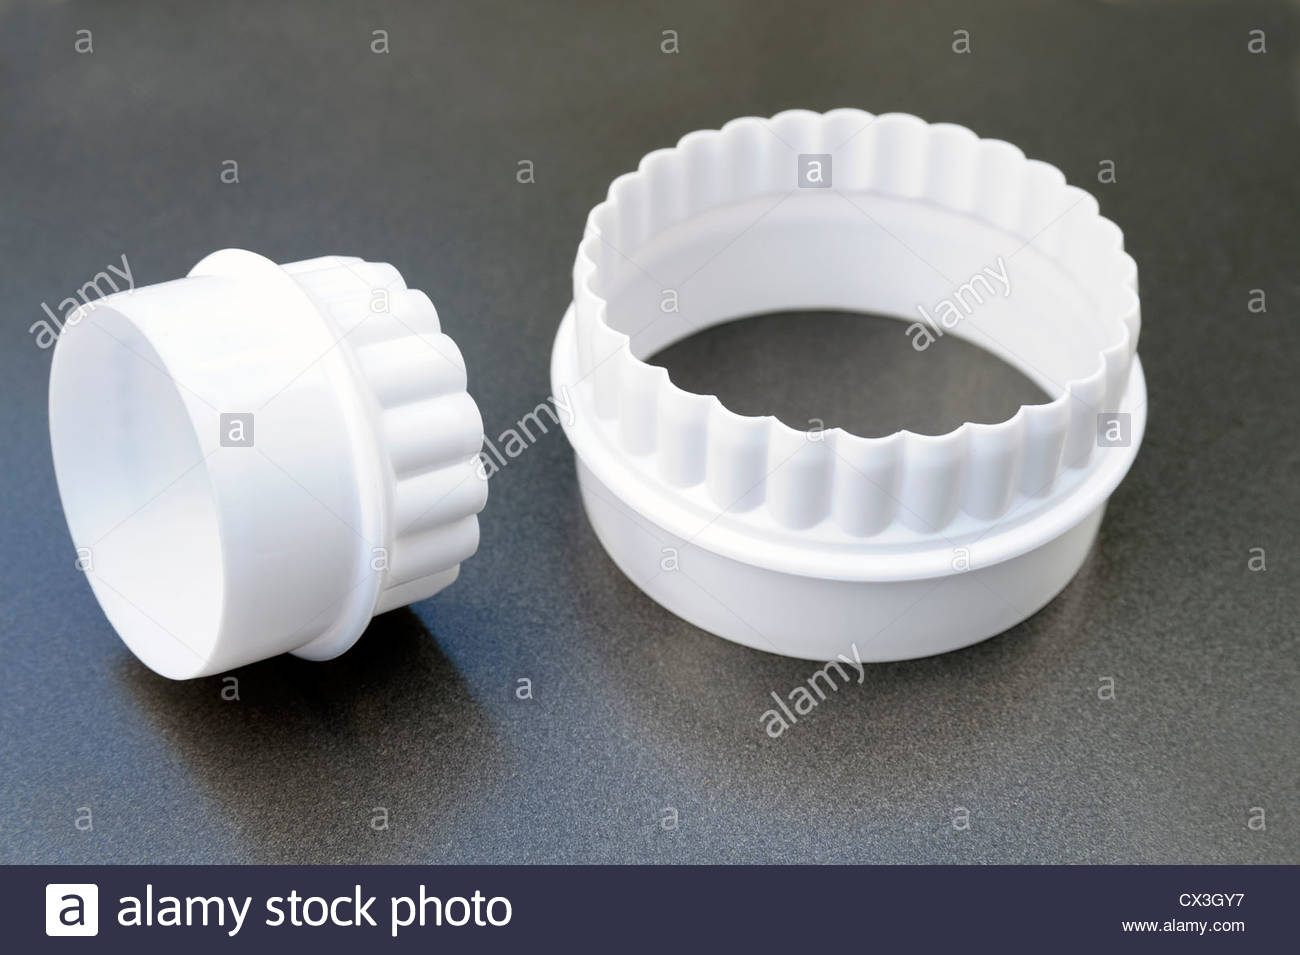 Pastry cutters. White plastic cookie cutter set. Stock Photo